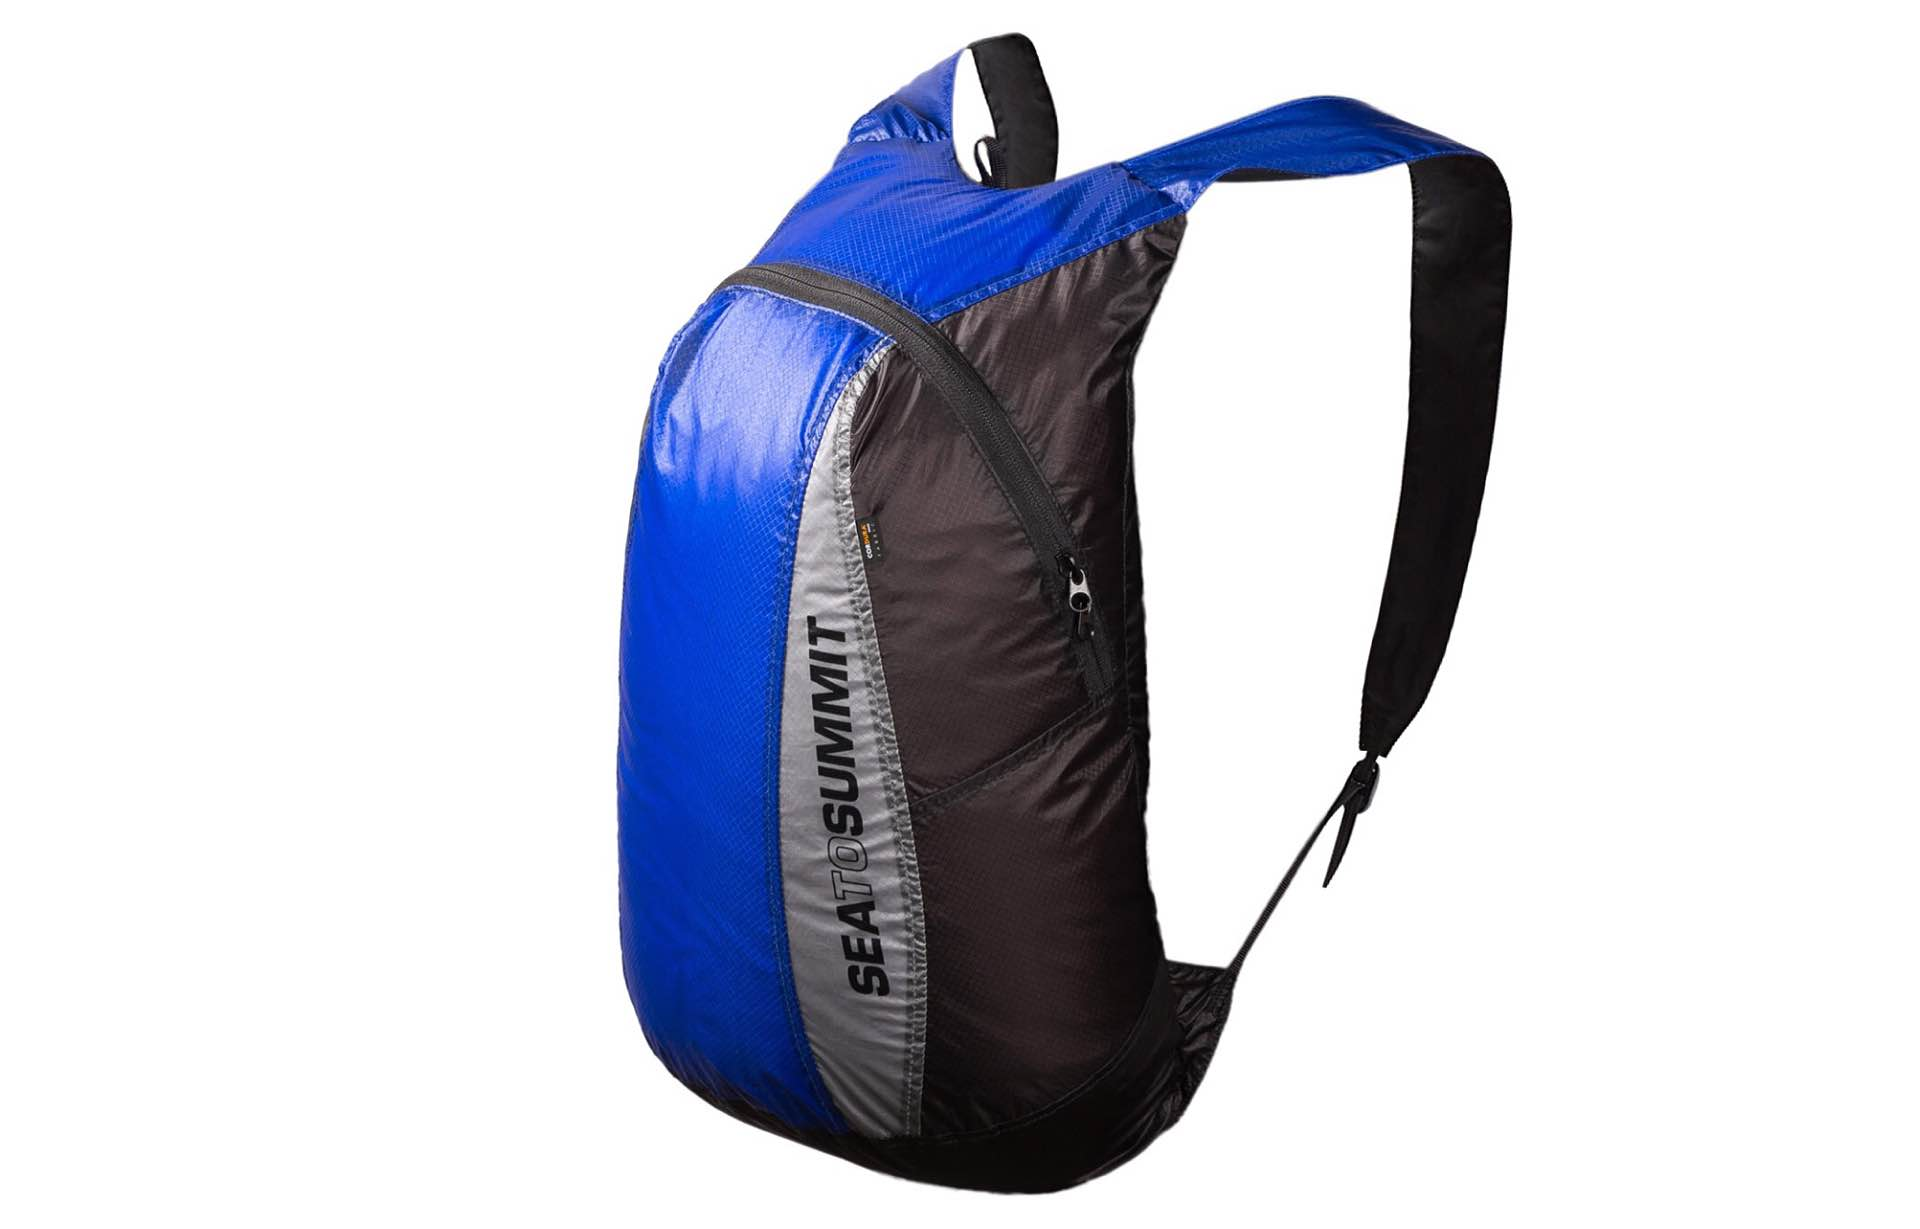 sea-to-summit-ultra-sil-day-pack